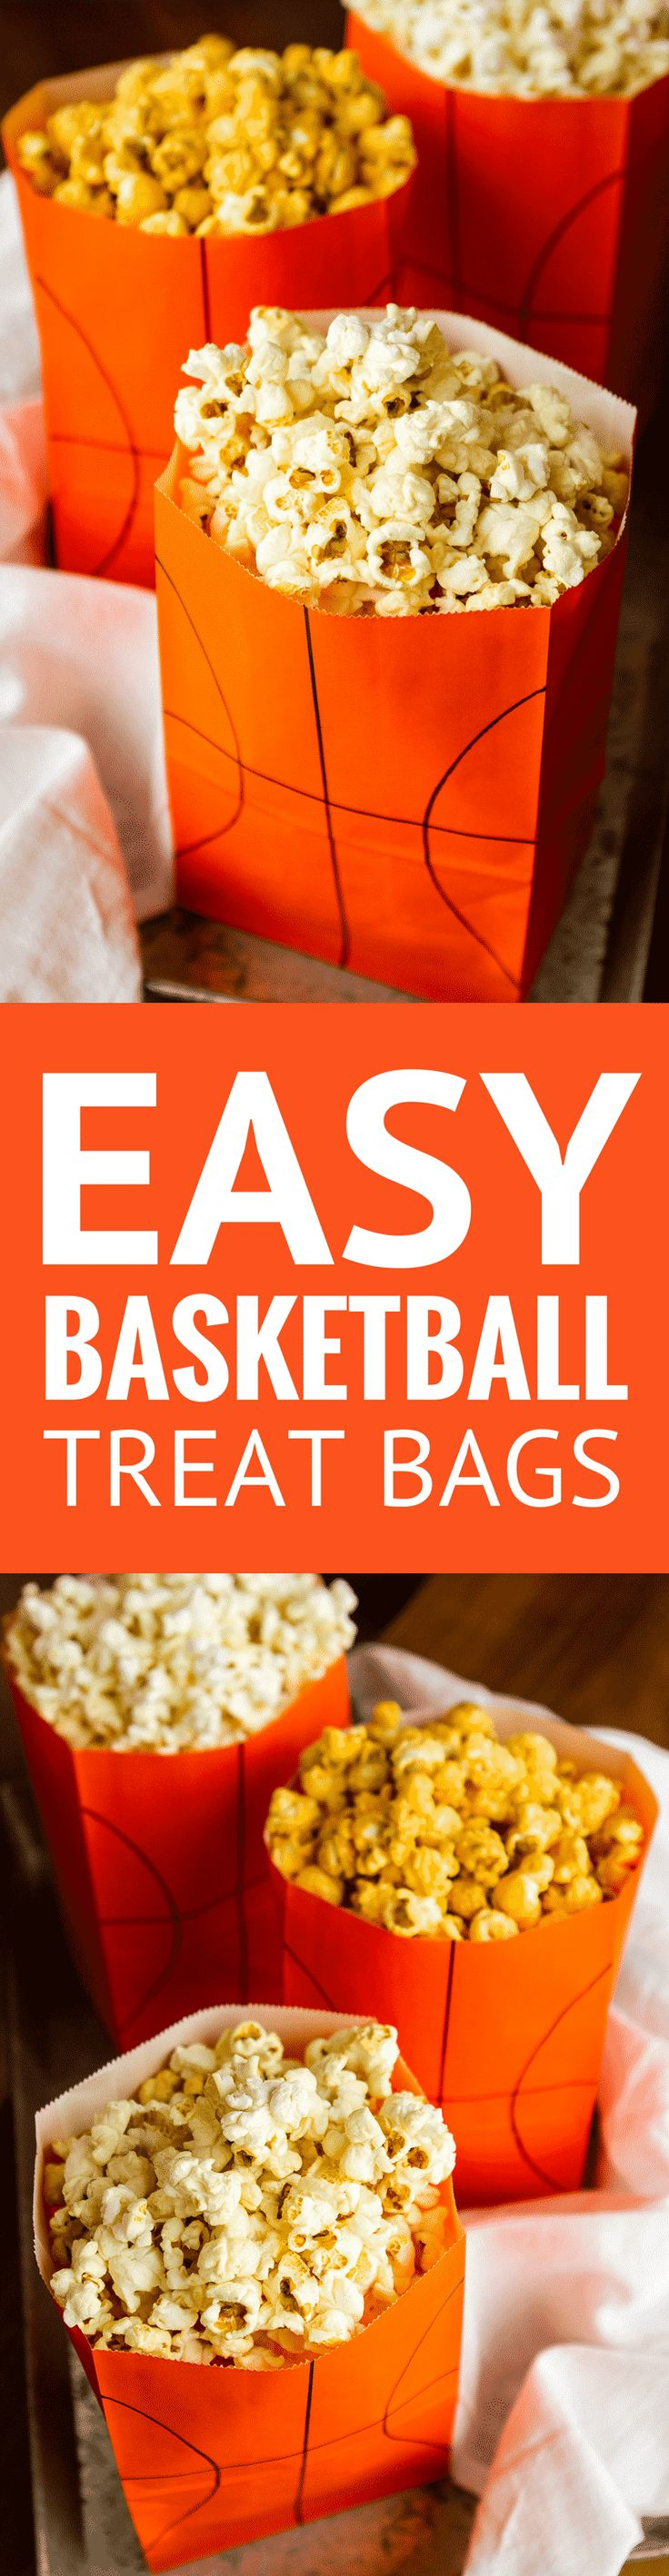 Easy DIY Basketball Treat Bags -- this fun basketball treat bags craft is SO quick and easy to complete! | diy basketball goodie bags | basketball party favors ideas | basketball party | march madness ideas | find the tutorial on unsophisticook.com